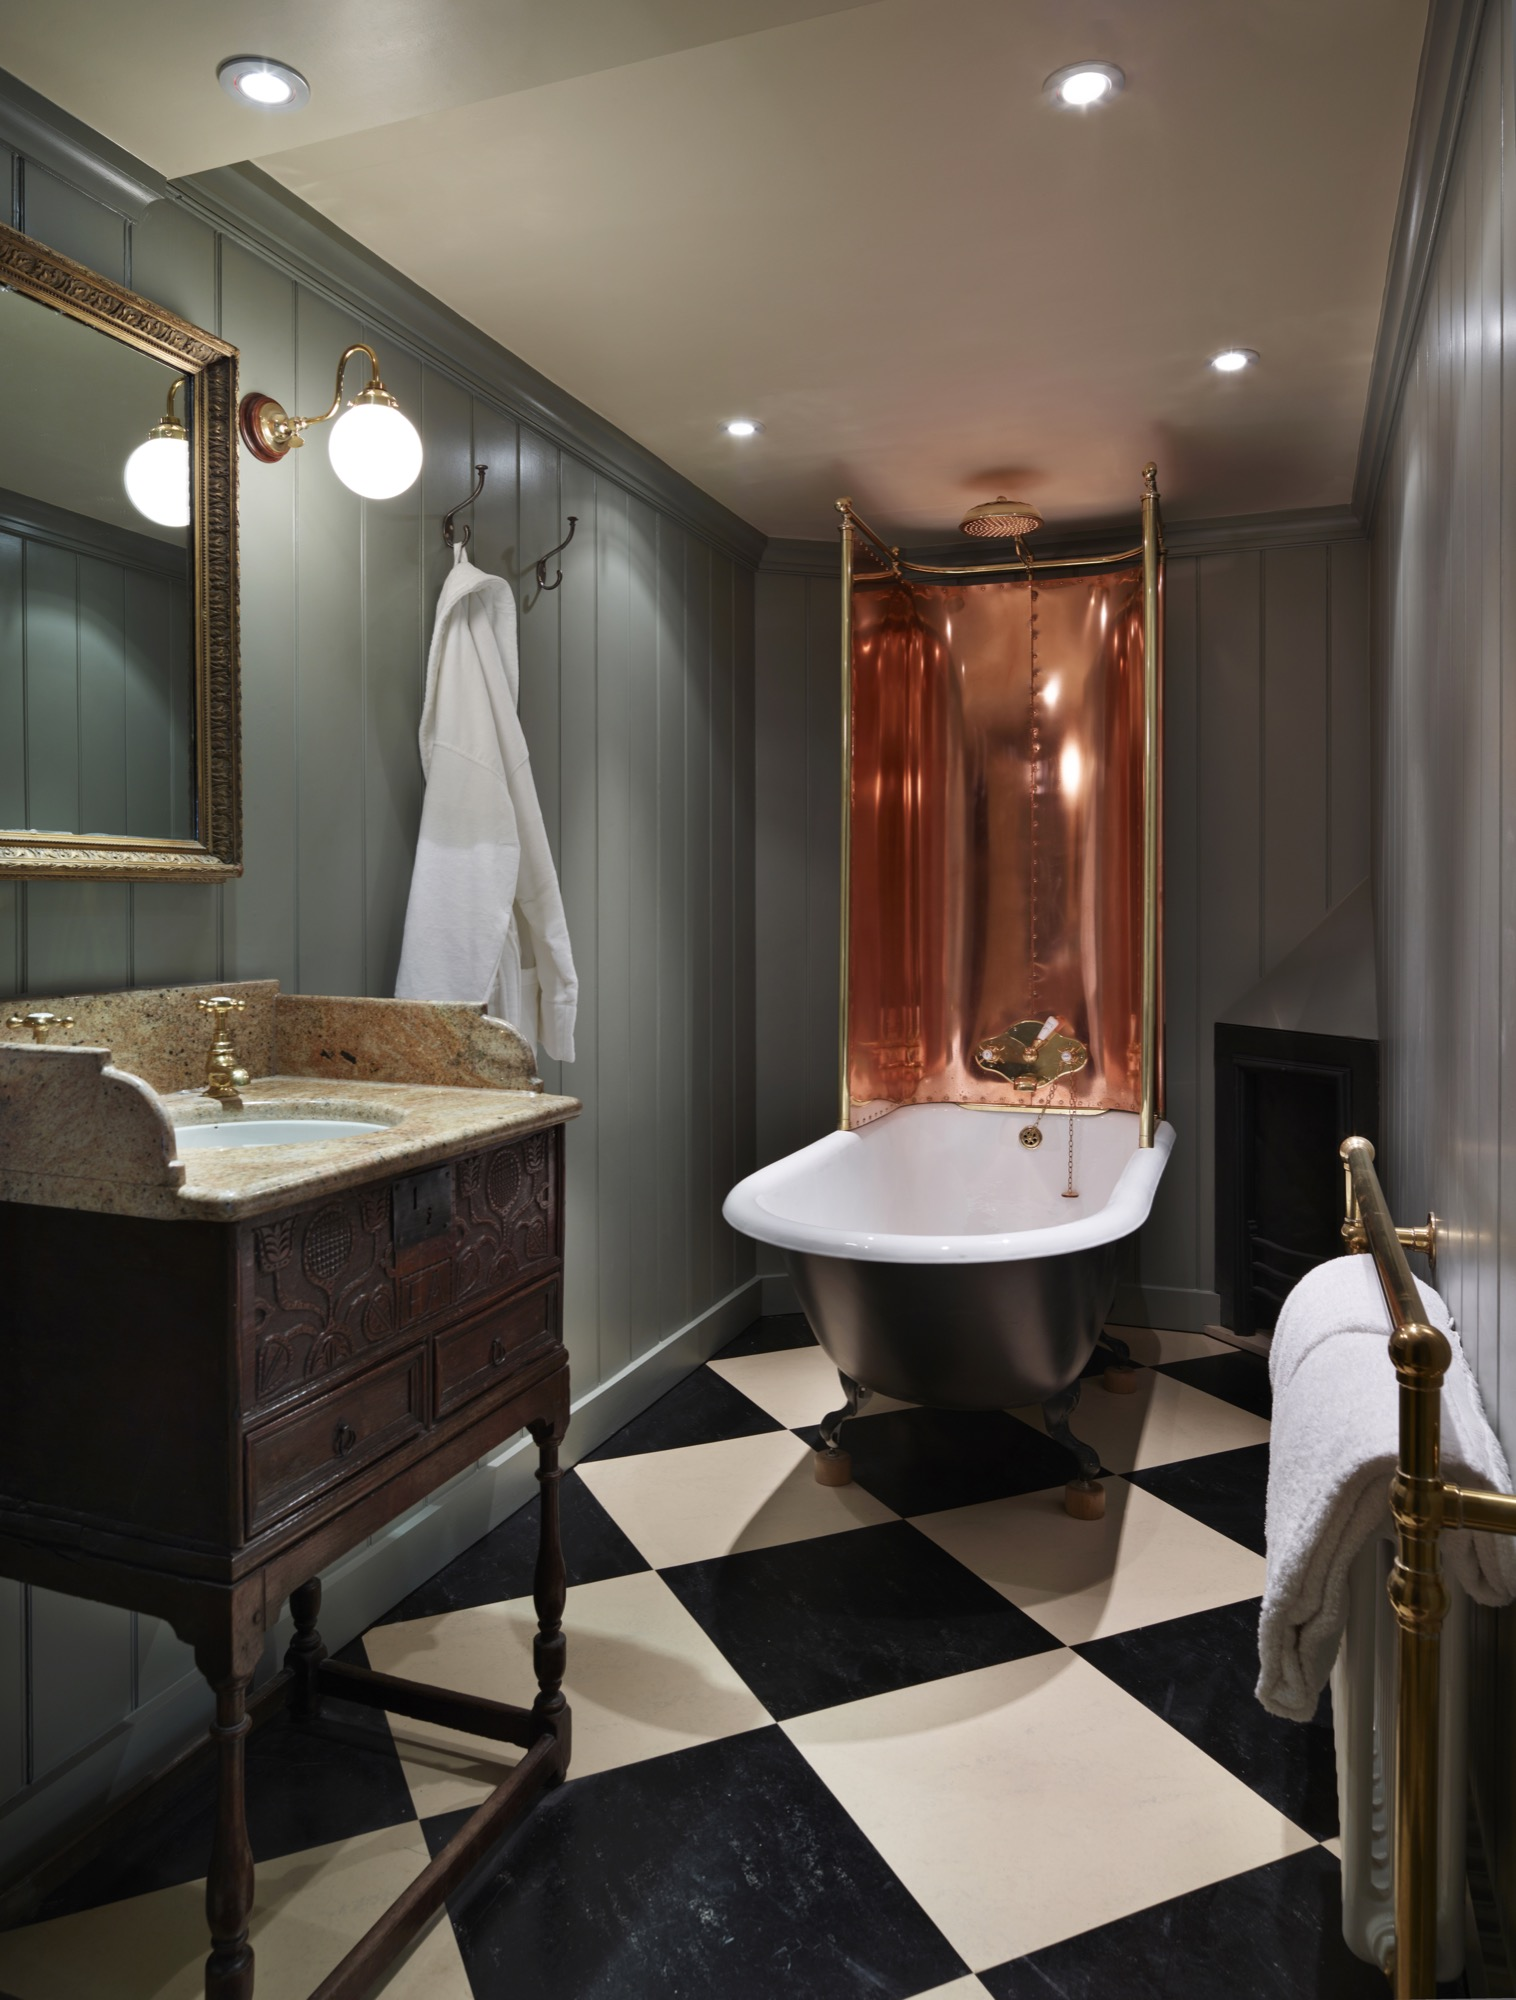 Eccentric Romance At Batty Langley's Hotel| Spitalfields